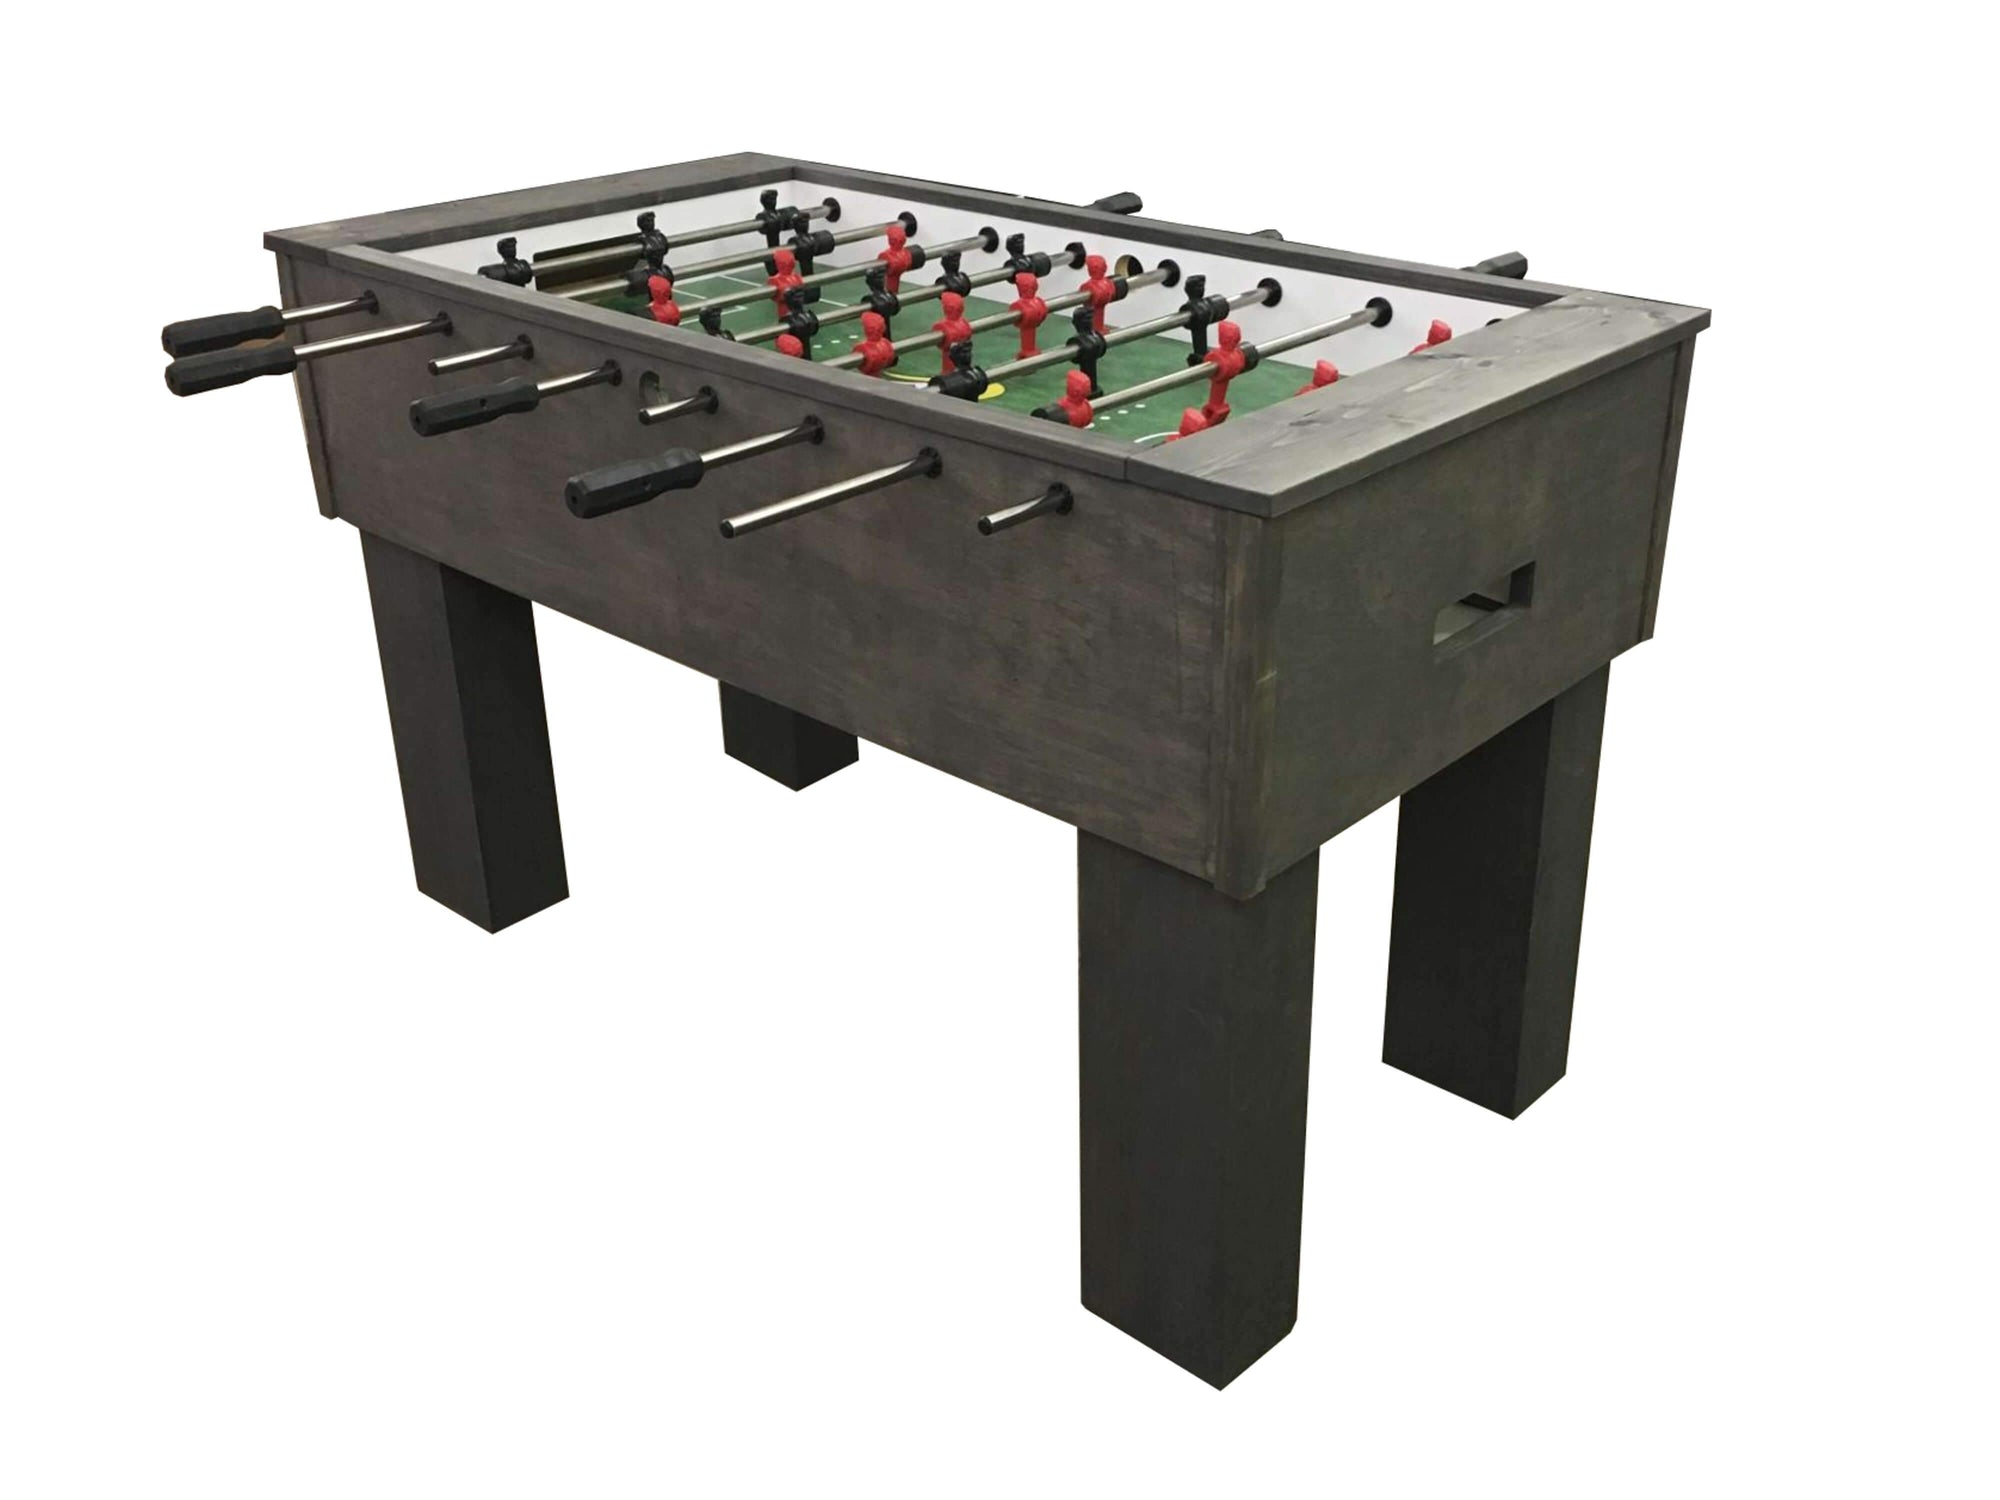 "Performance Games Sure Shot RV Foosball Table 56"" - Gaming Blaze"